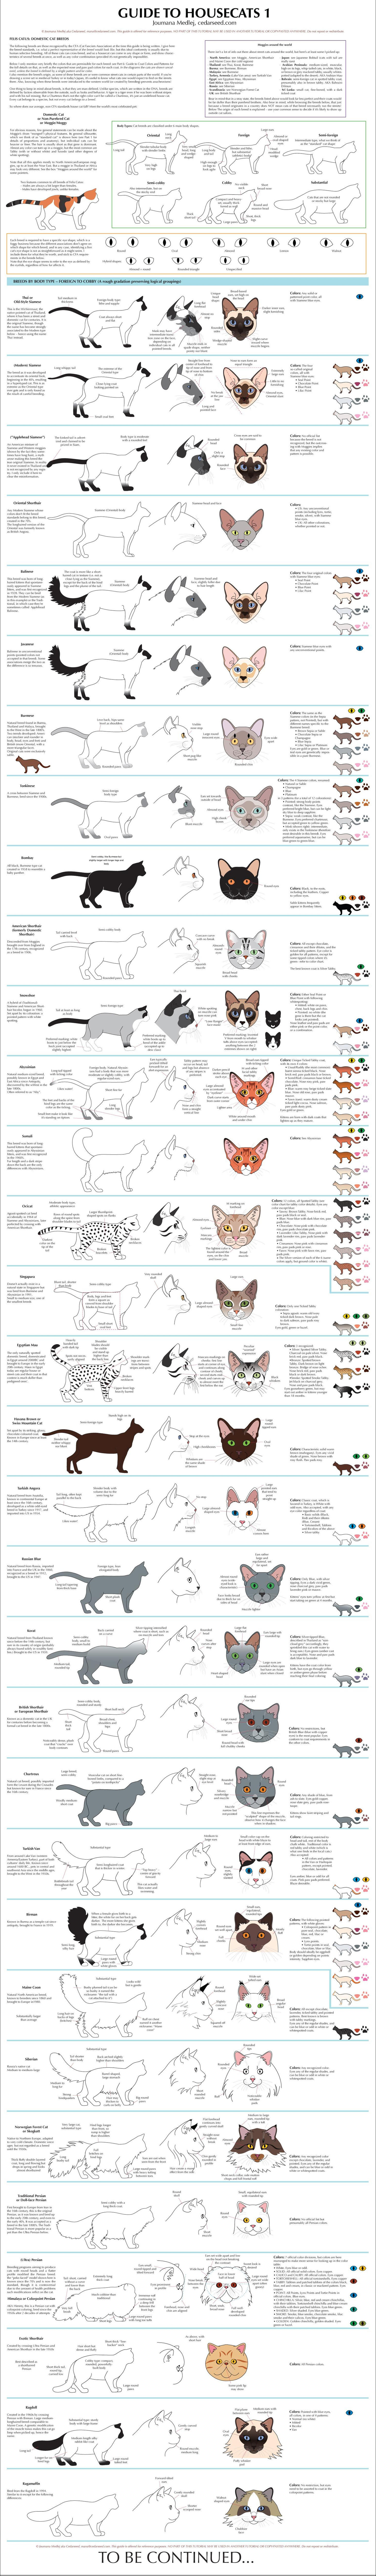 HOW TO GUIDE FOR HOUSE CATS....No, I did not read this before ...